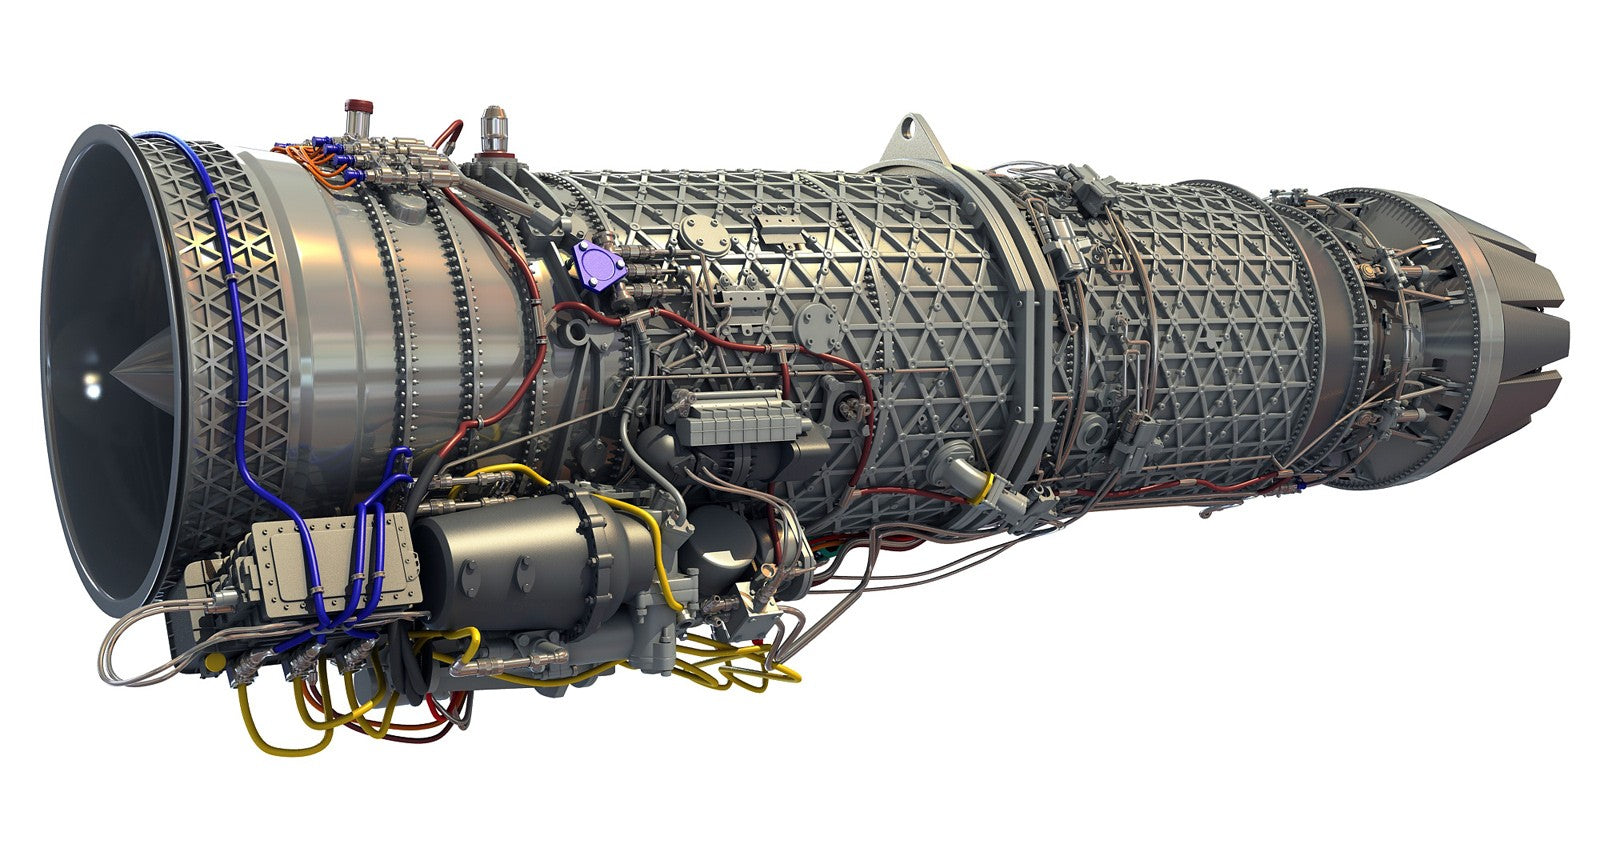 Eurojet EJ200 Turbofan Jet Engine 3D Model